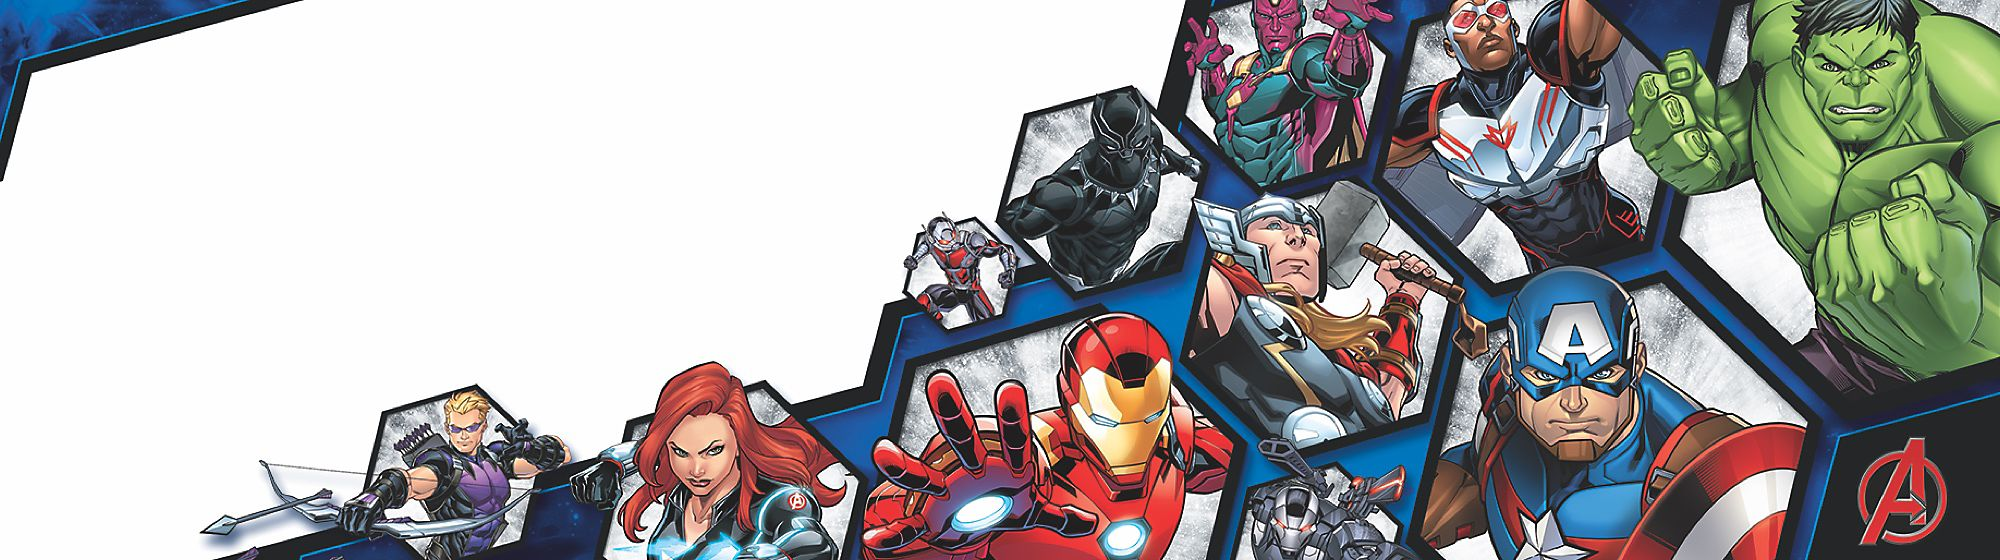 Marvel Discover our awesome collection of costumes, toys, stationery and more inspired by Marvel super heroes!